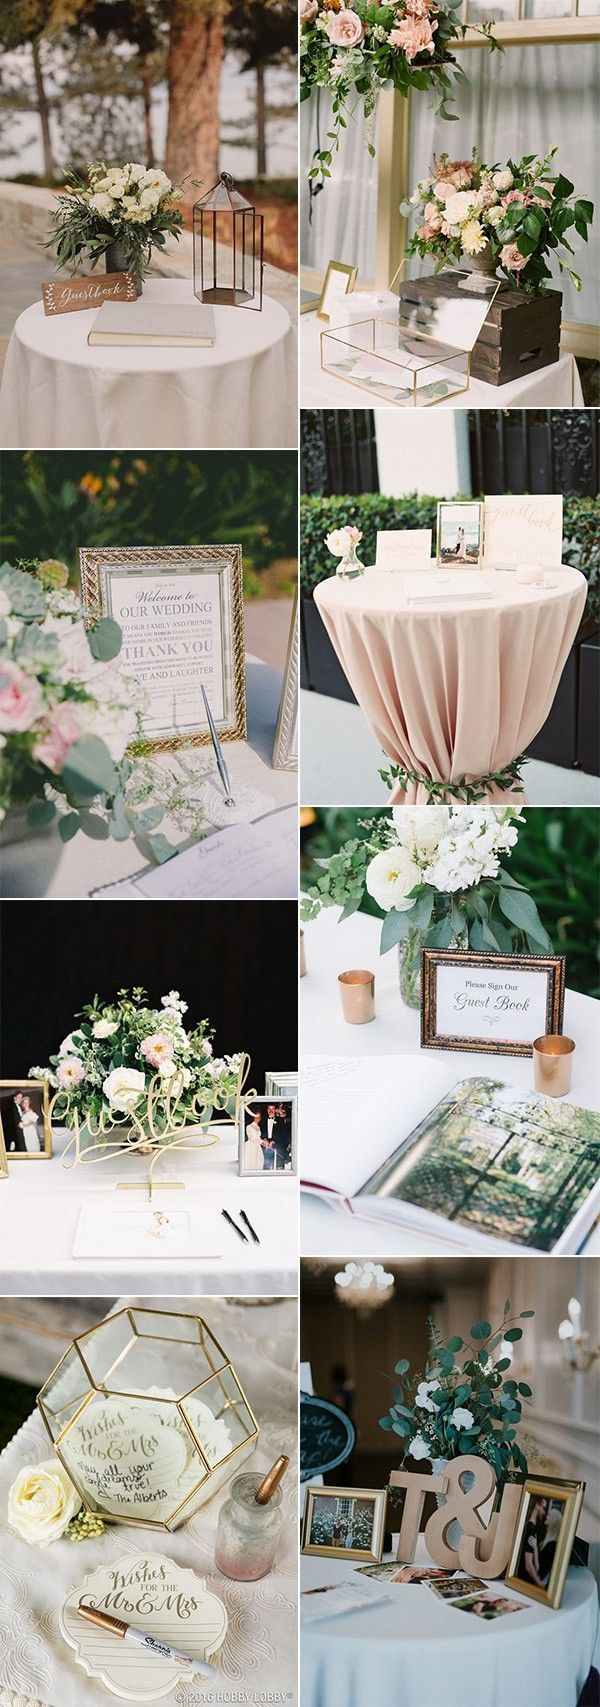 Wedding Sign In Table Decorations Interesting Best 25 Table Accessories Ideas On Pinterest  Coffee Table Decorating Design